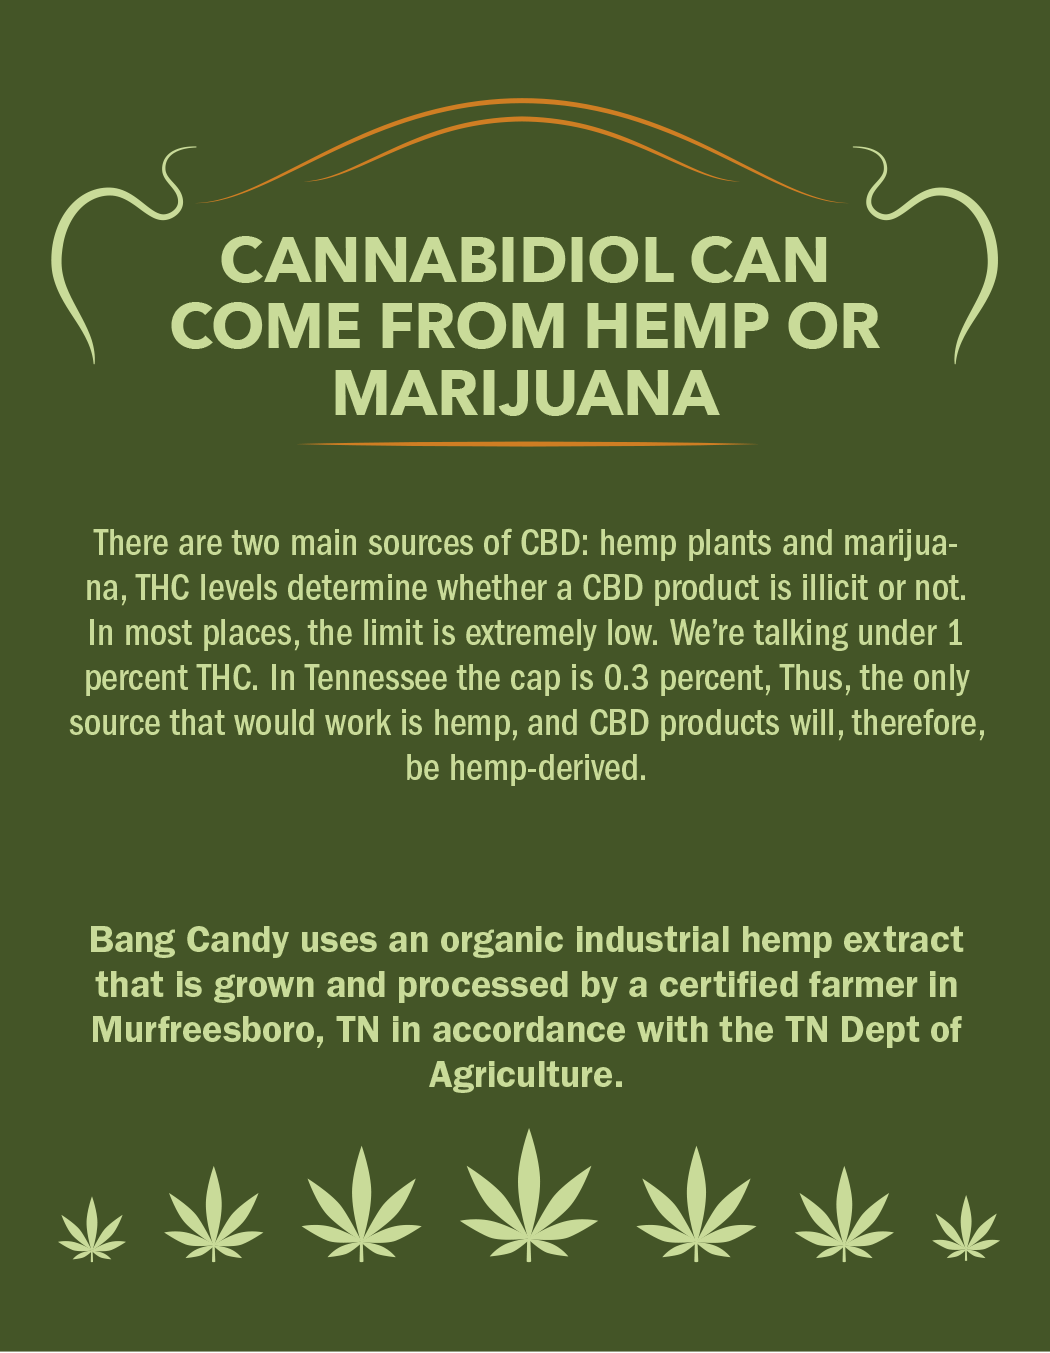 Cannabidiol Sources